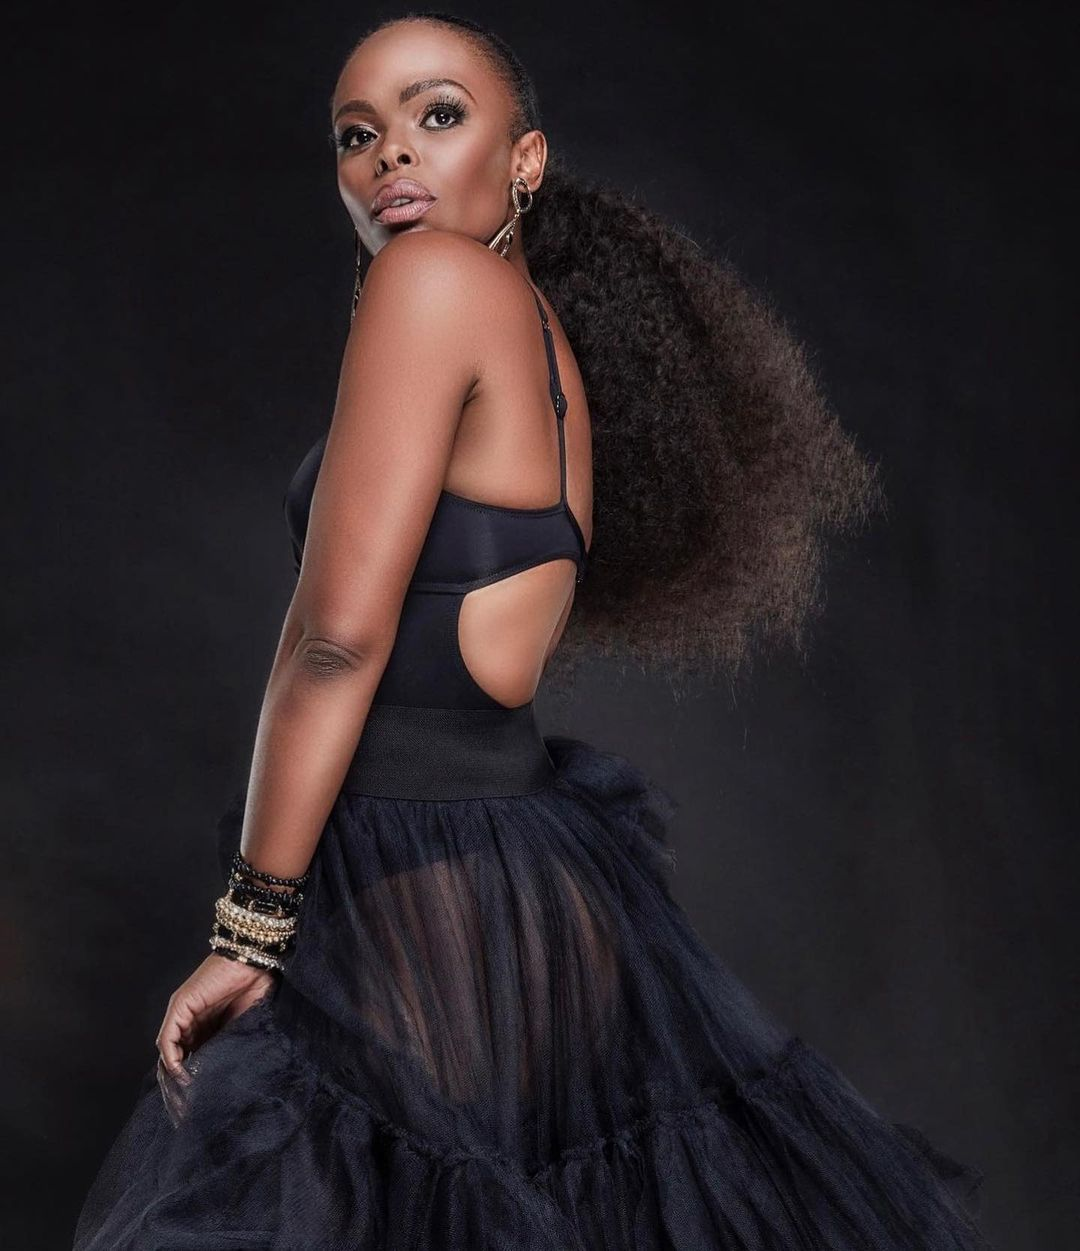 Unathi pens sweet birthday message to bestfriend and daughter